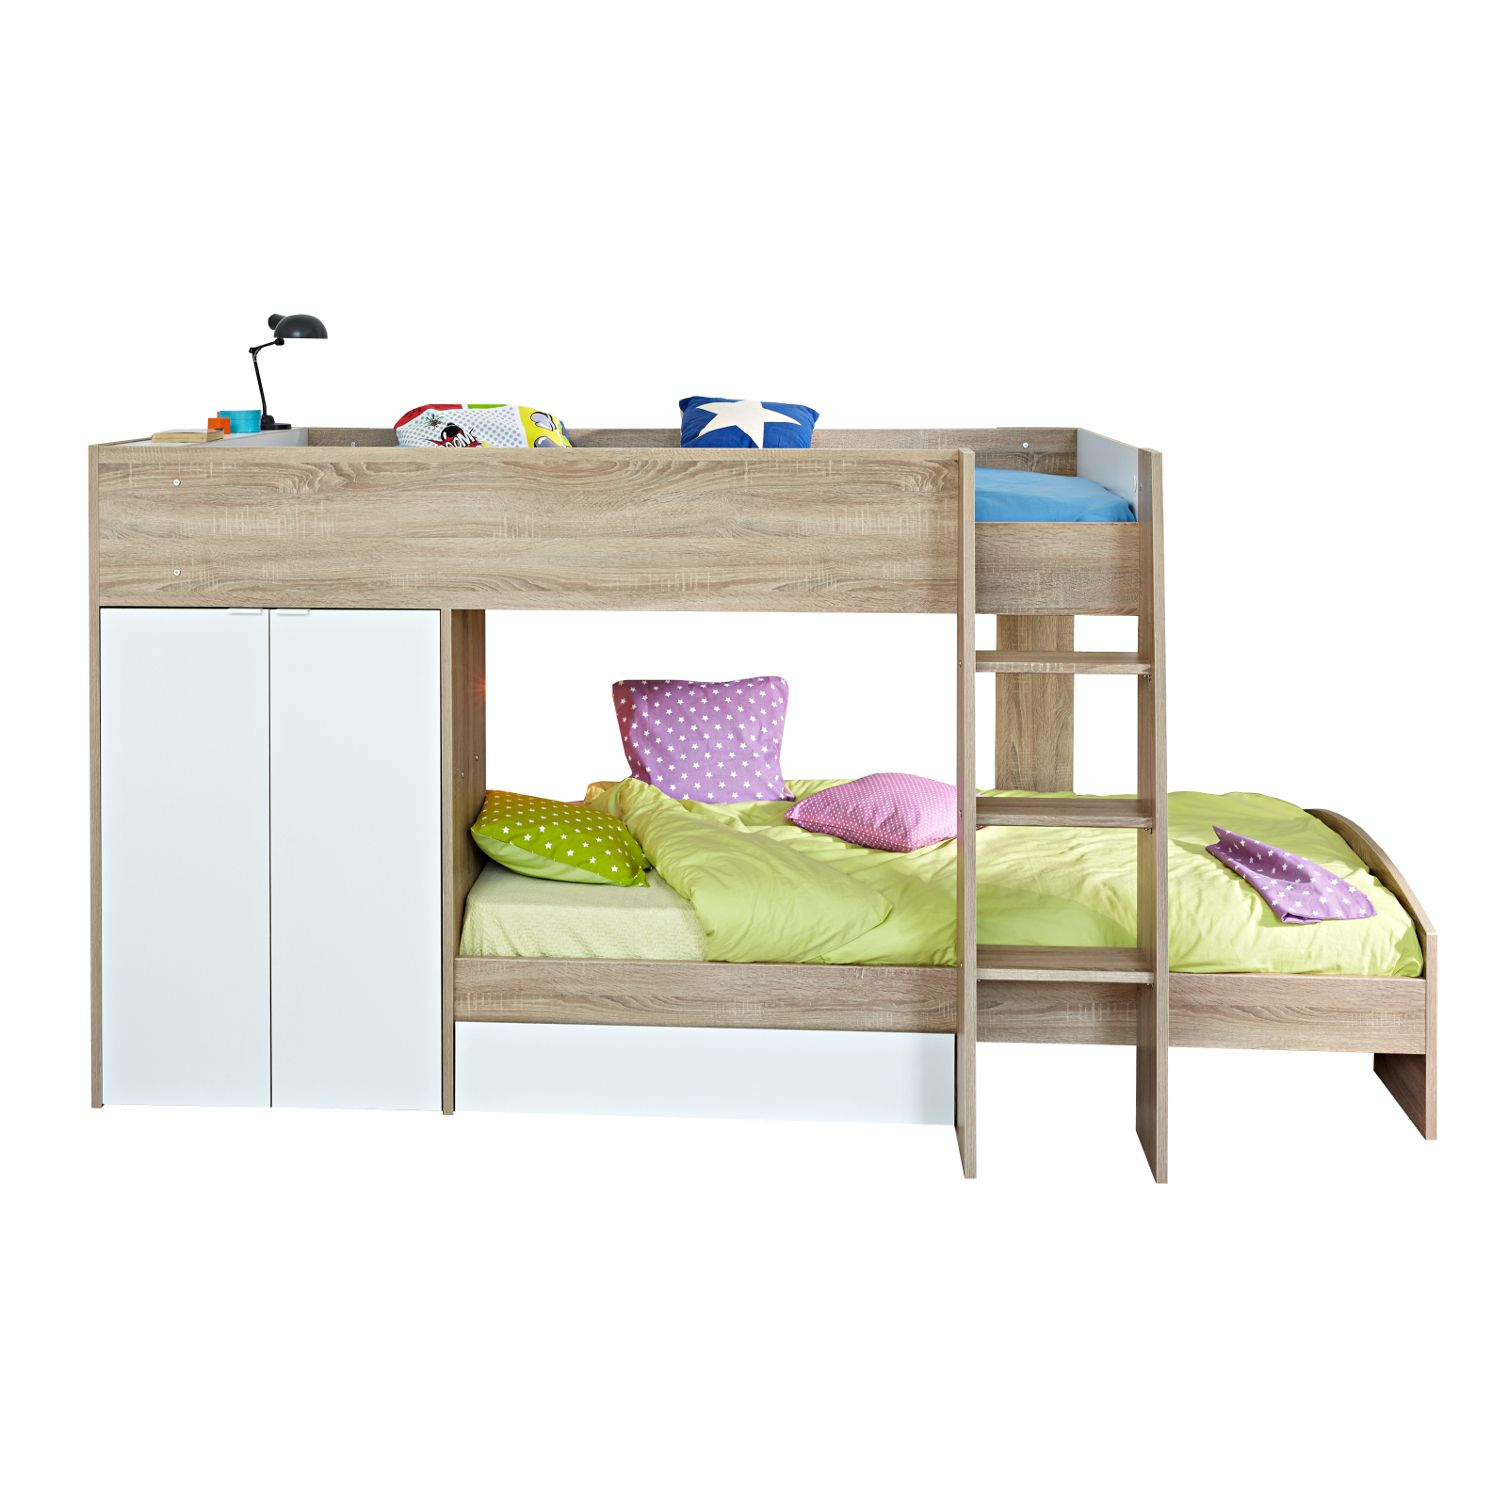 Parisot Stim Bunk Bed Next Day Delivery Parisot Stim Bunk Bed From